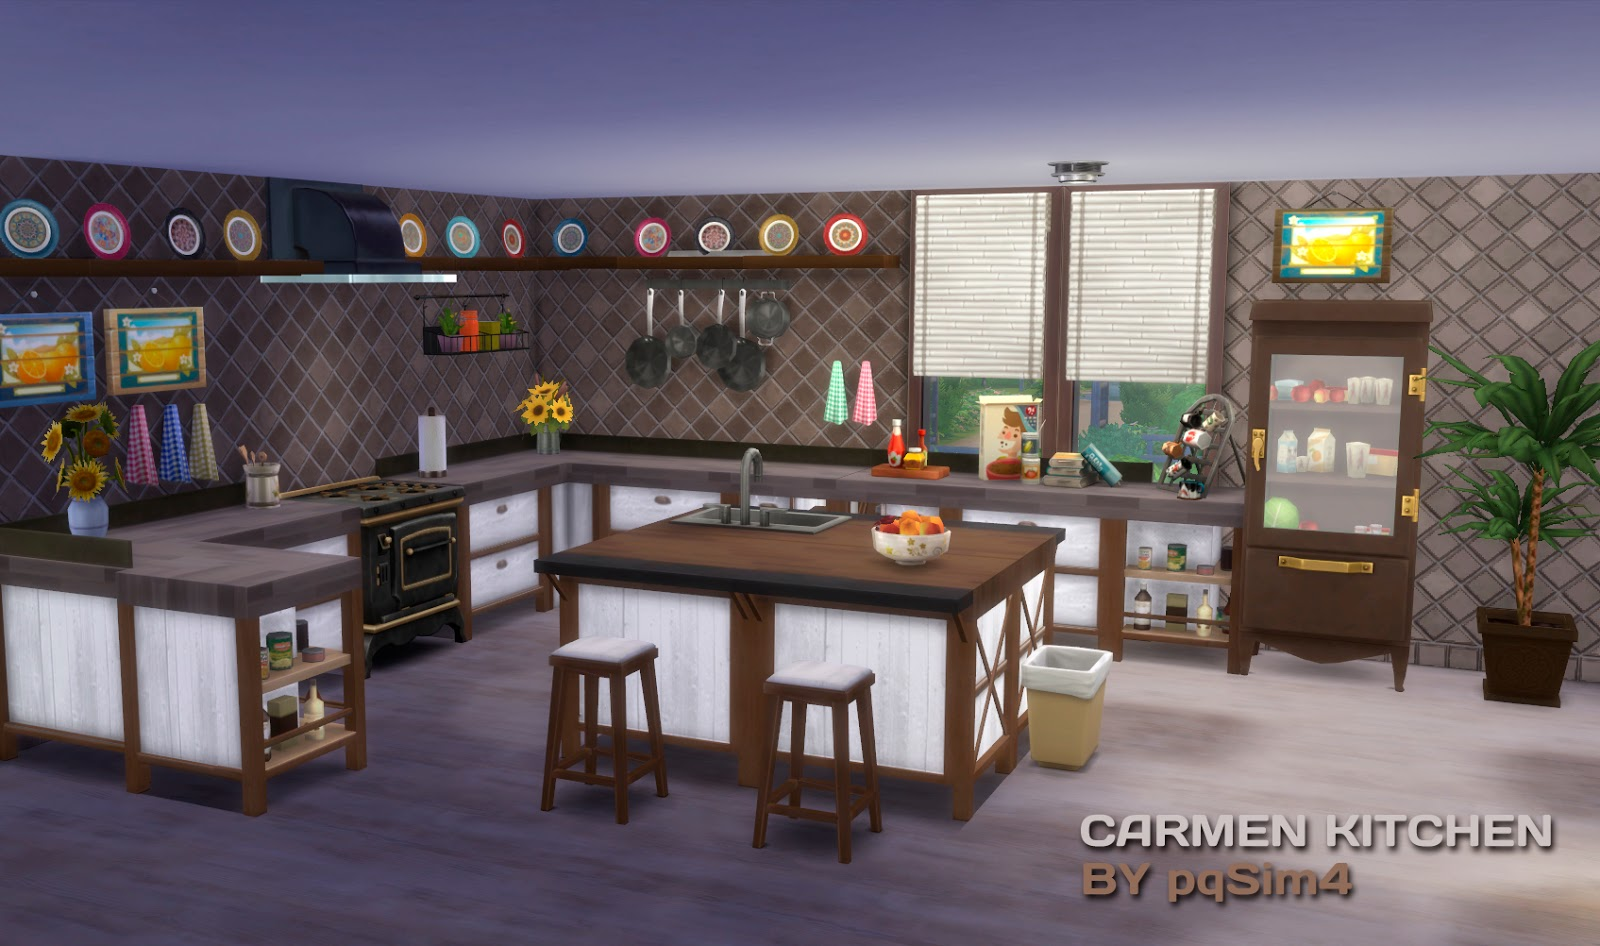 My sims 4 blog carmen kitchen decor recolors by pqsim4 for Sims 3 kitchen designs